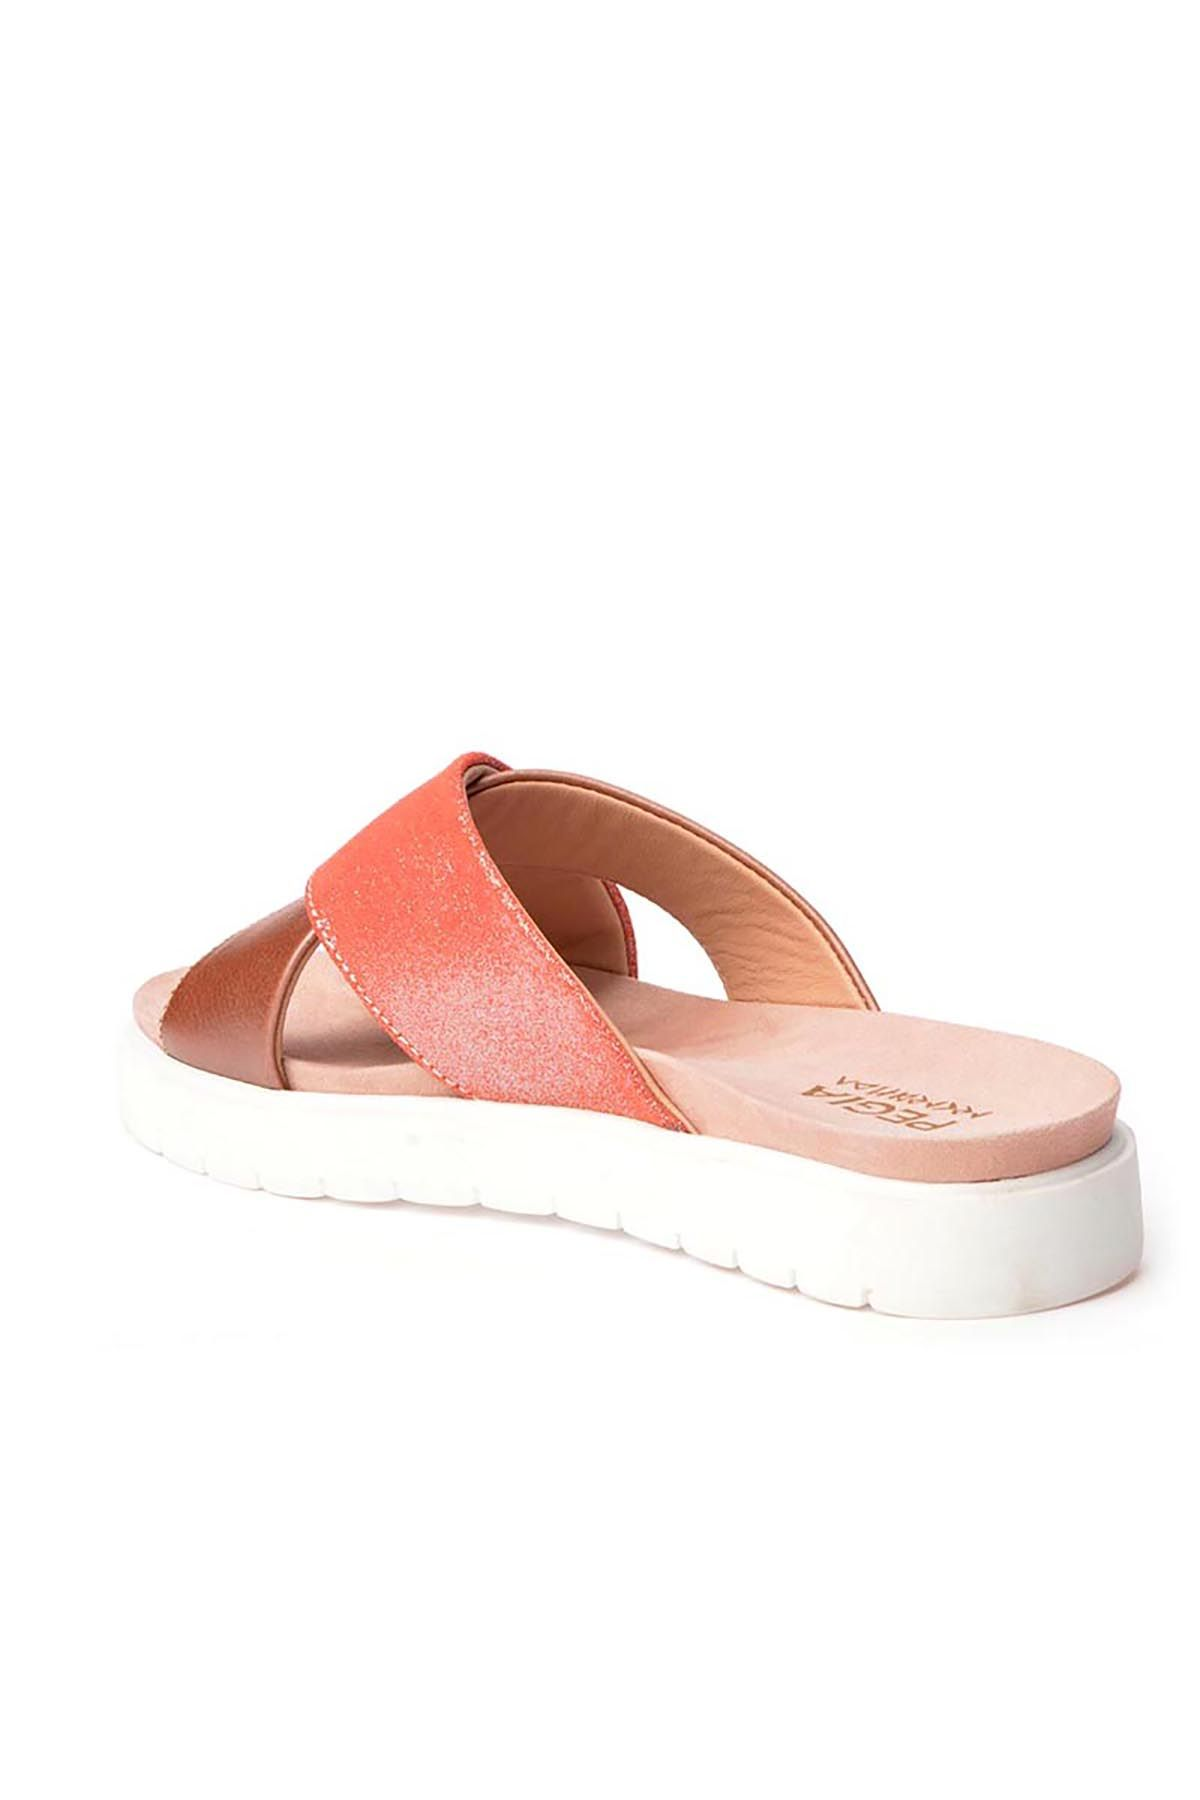 Pegia La Ferme Women Slippers From Genuine Leather REC-008 Pink